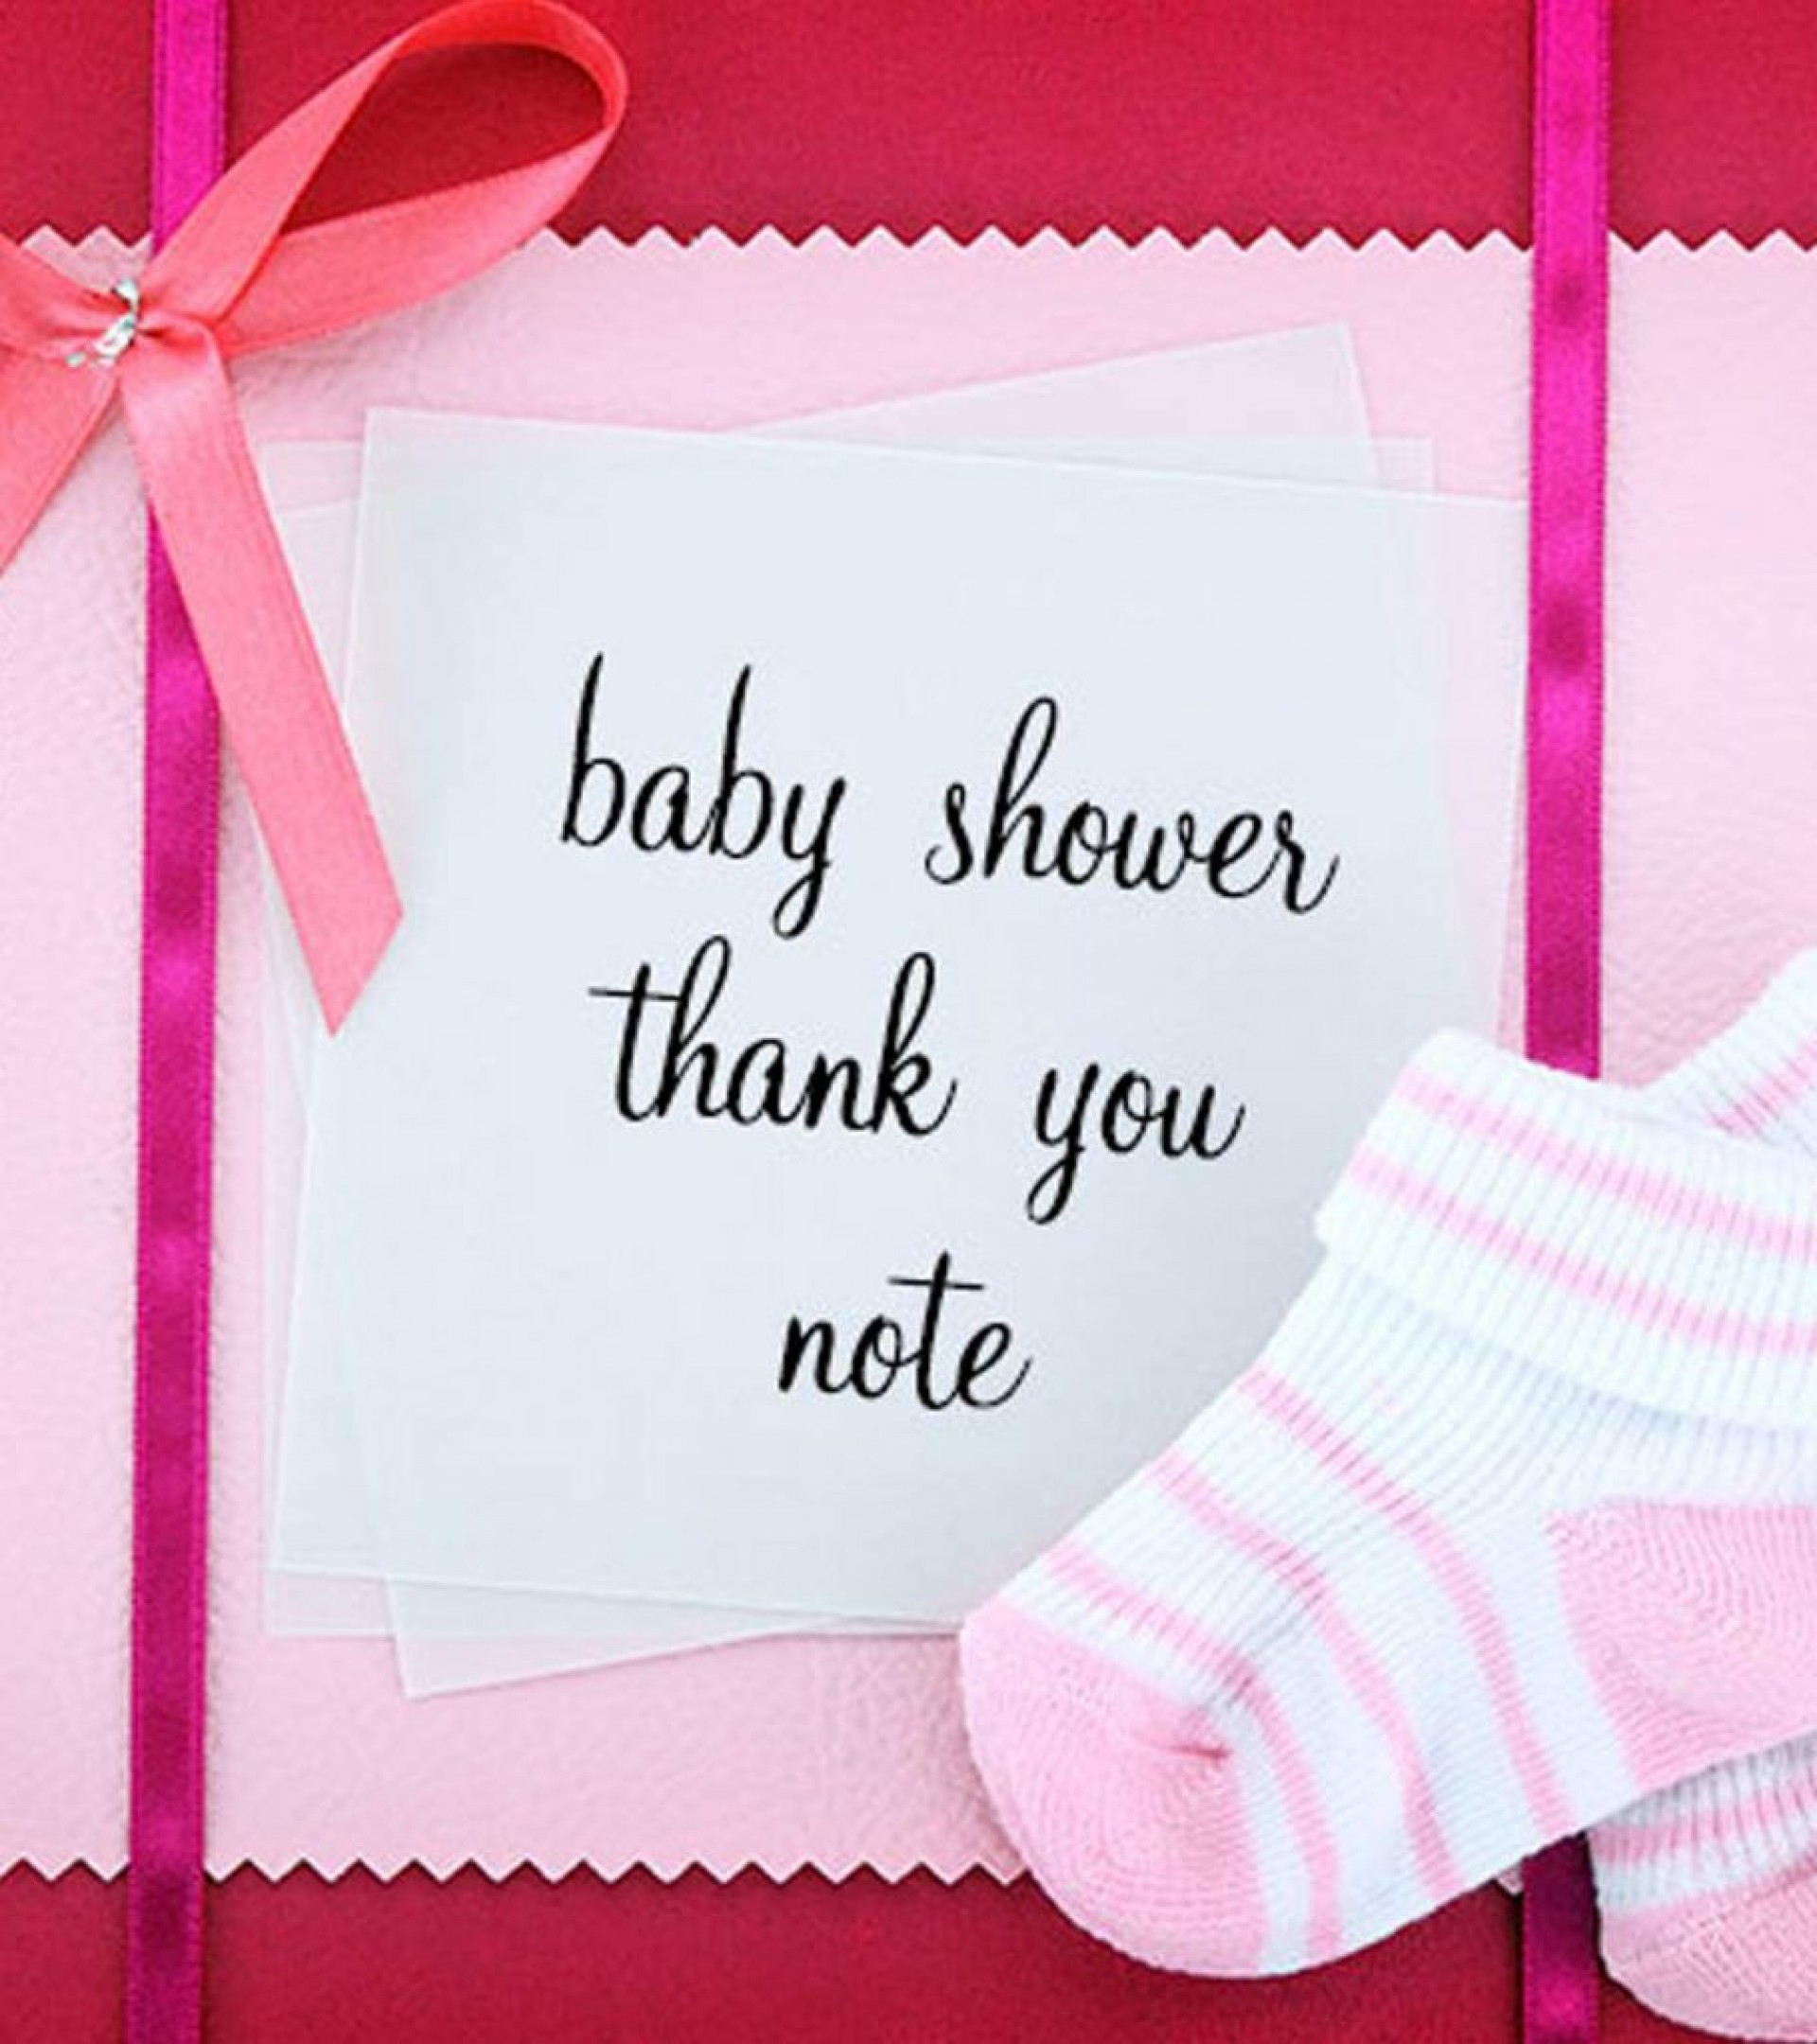 006 Excellent Thank You Note Wording For Baby Shower Gift Picture  Card Sample Example Letter1920